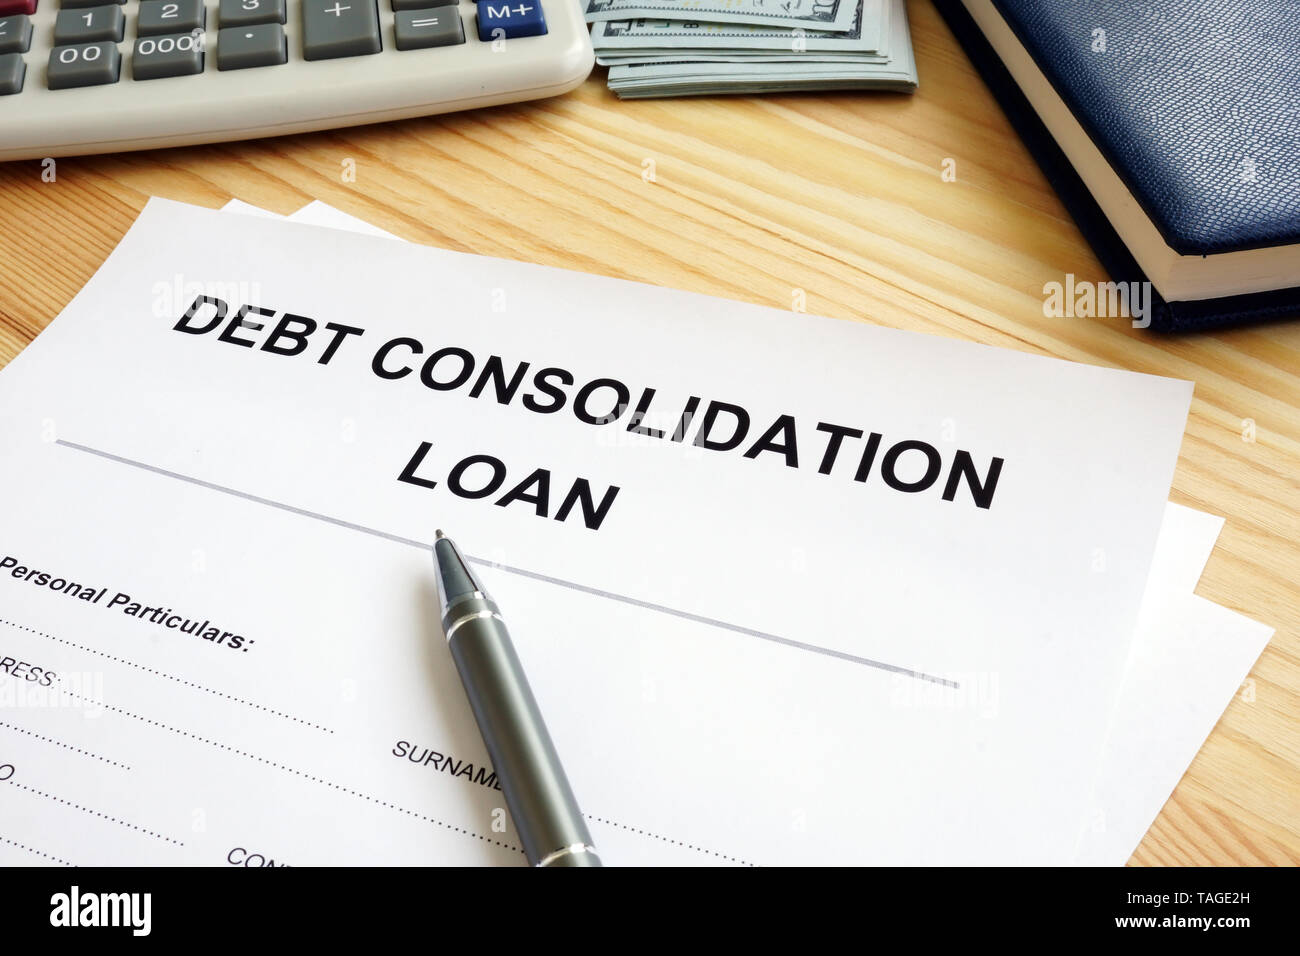 Debt consolidation loan concept. Stack of papers in the office. - Stock Image